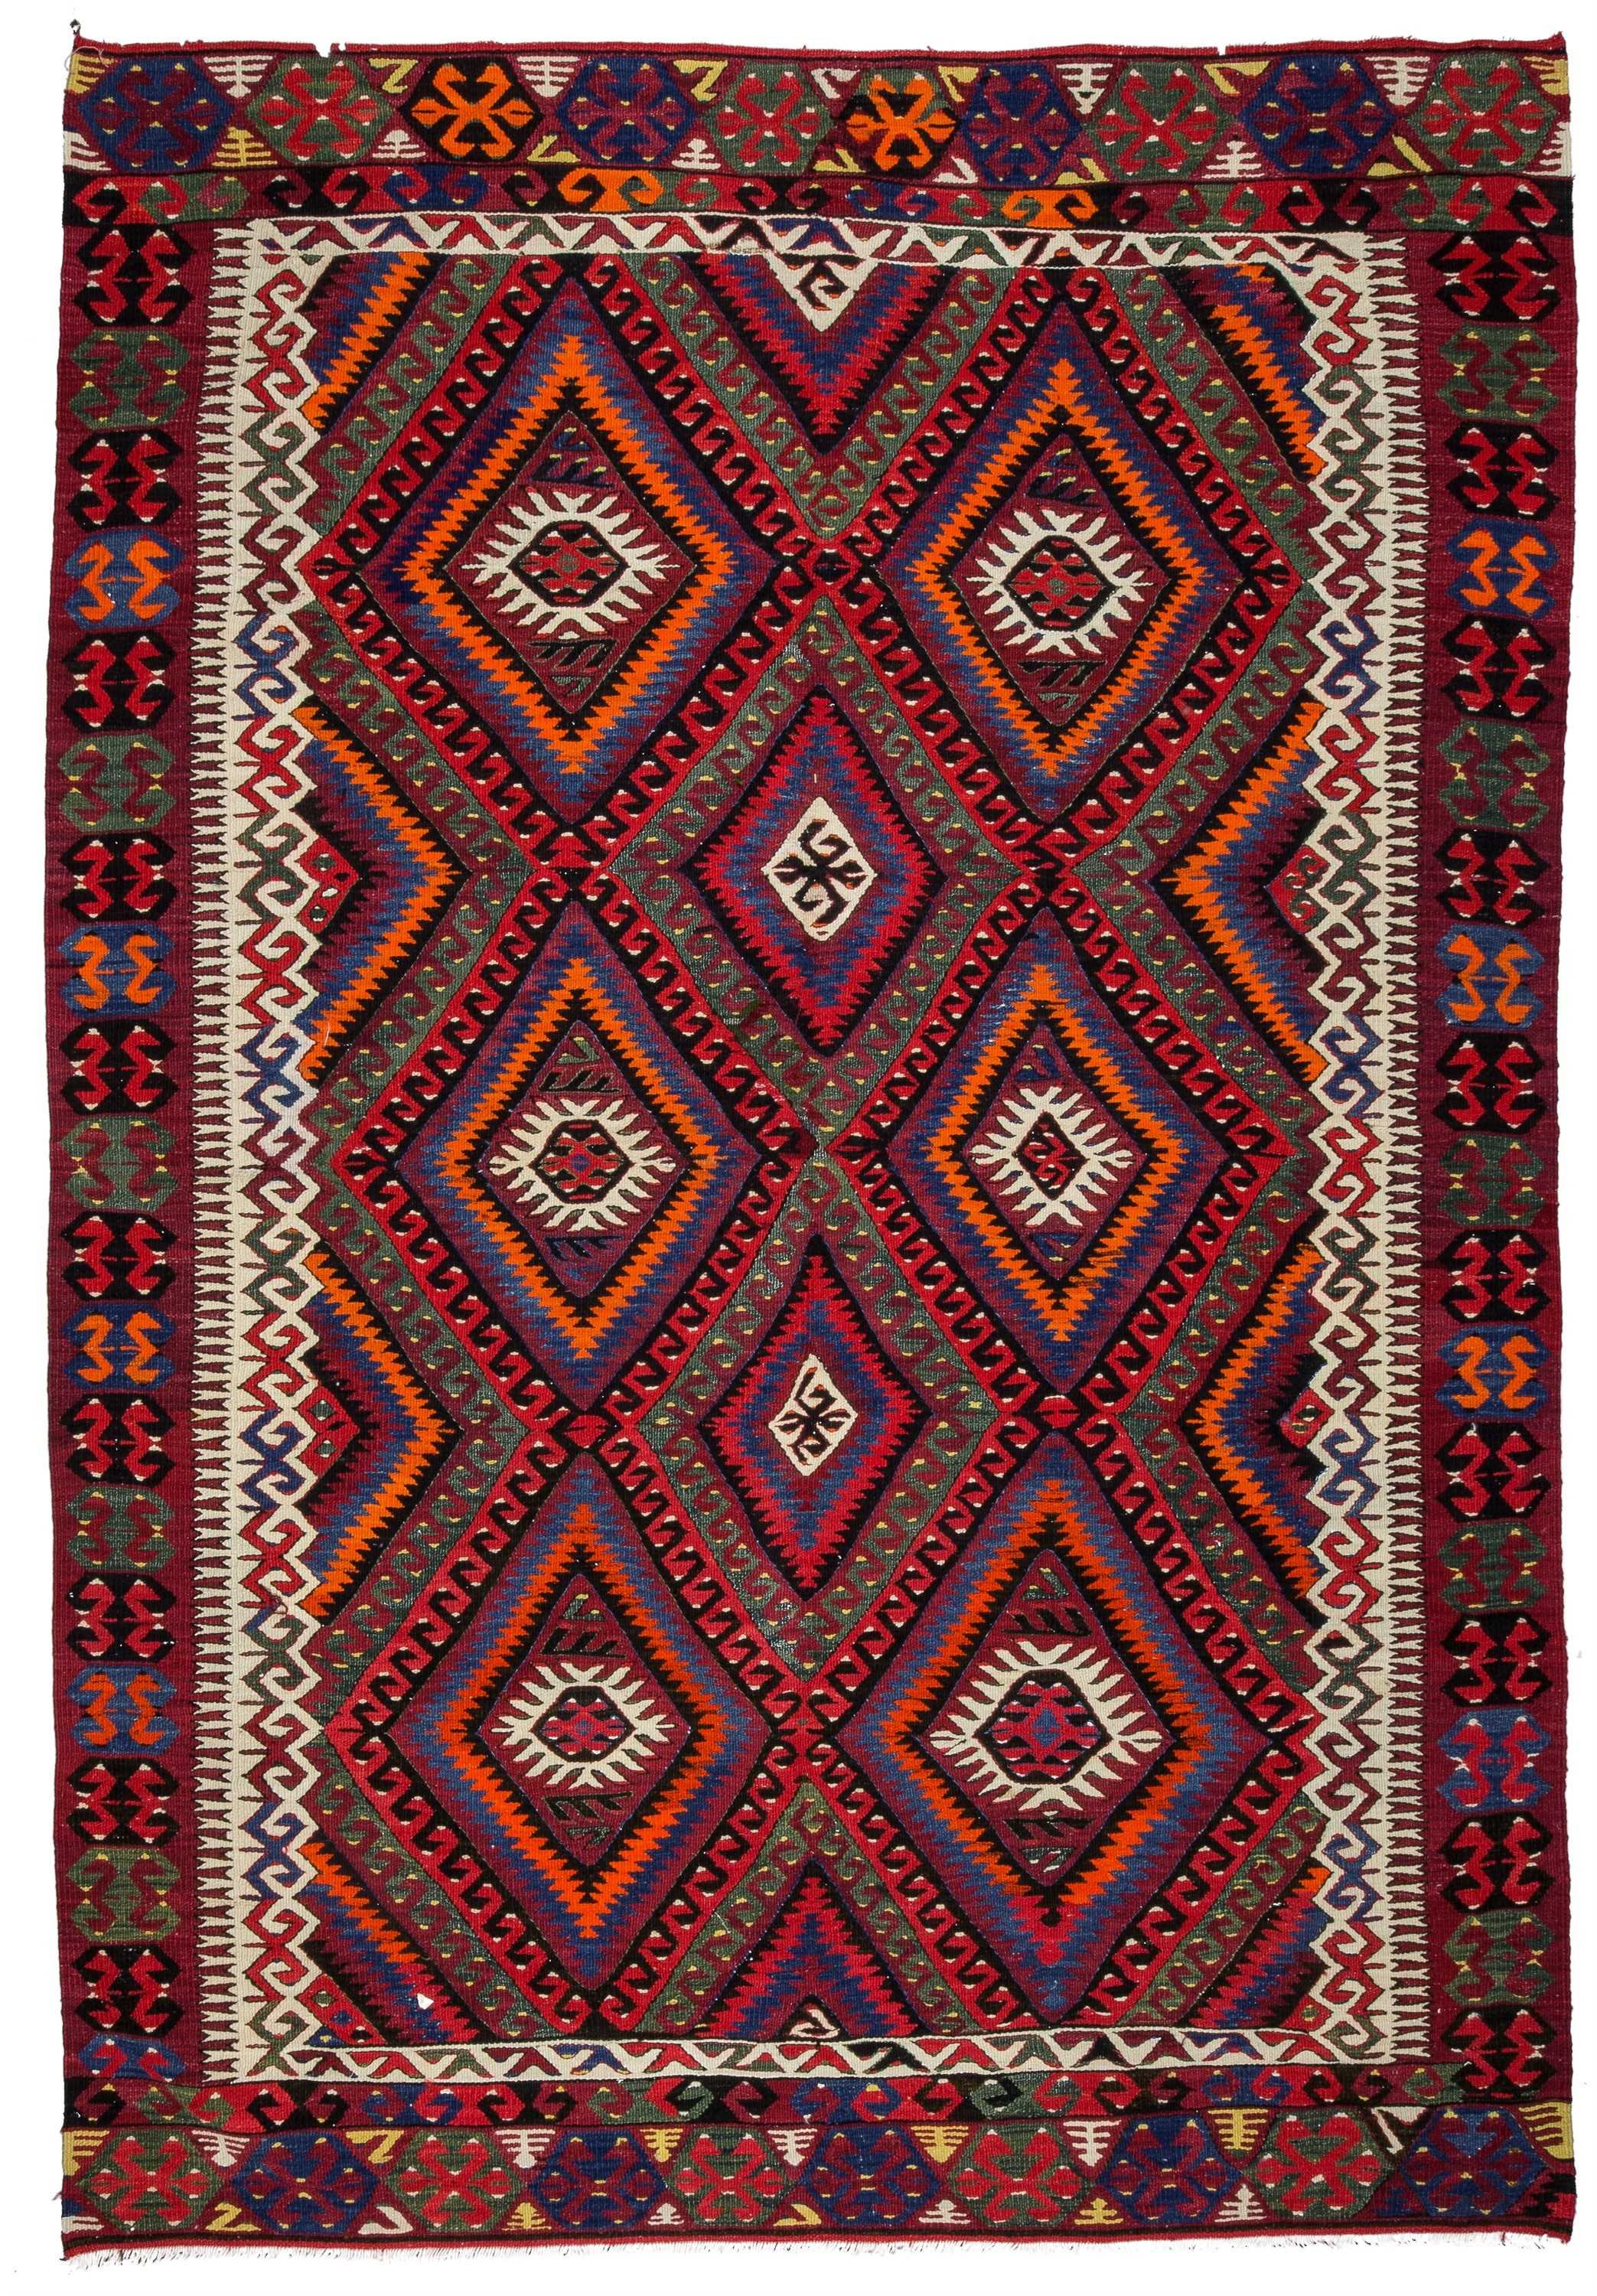 2x3 kilim rug rugs ideas for Kilim designs